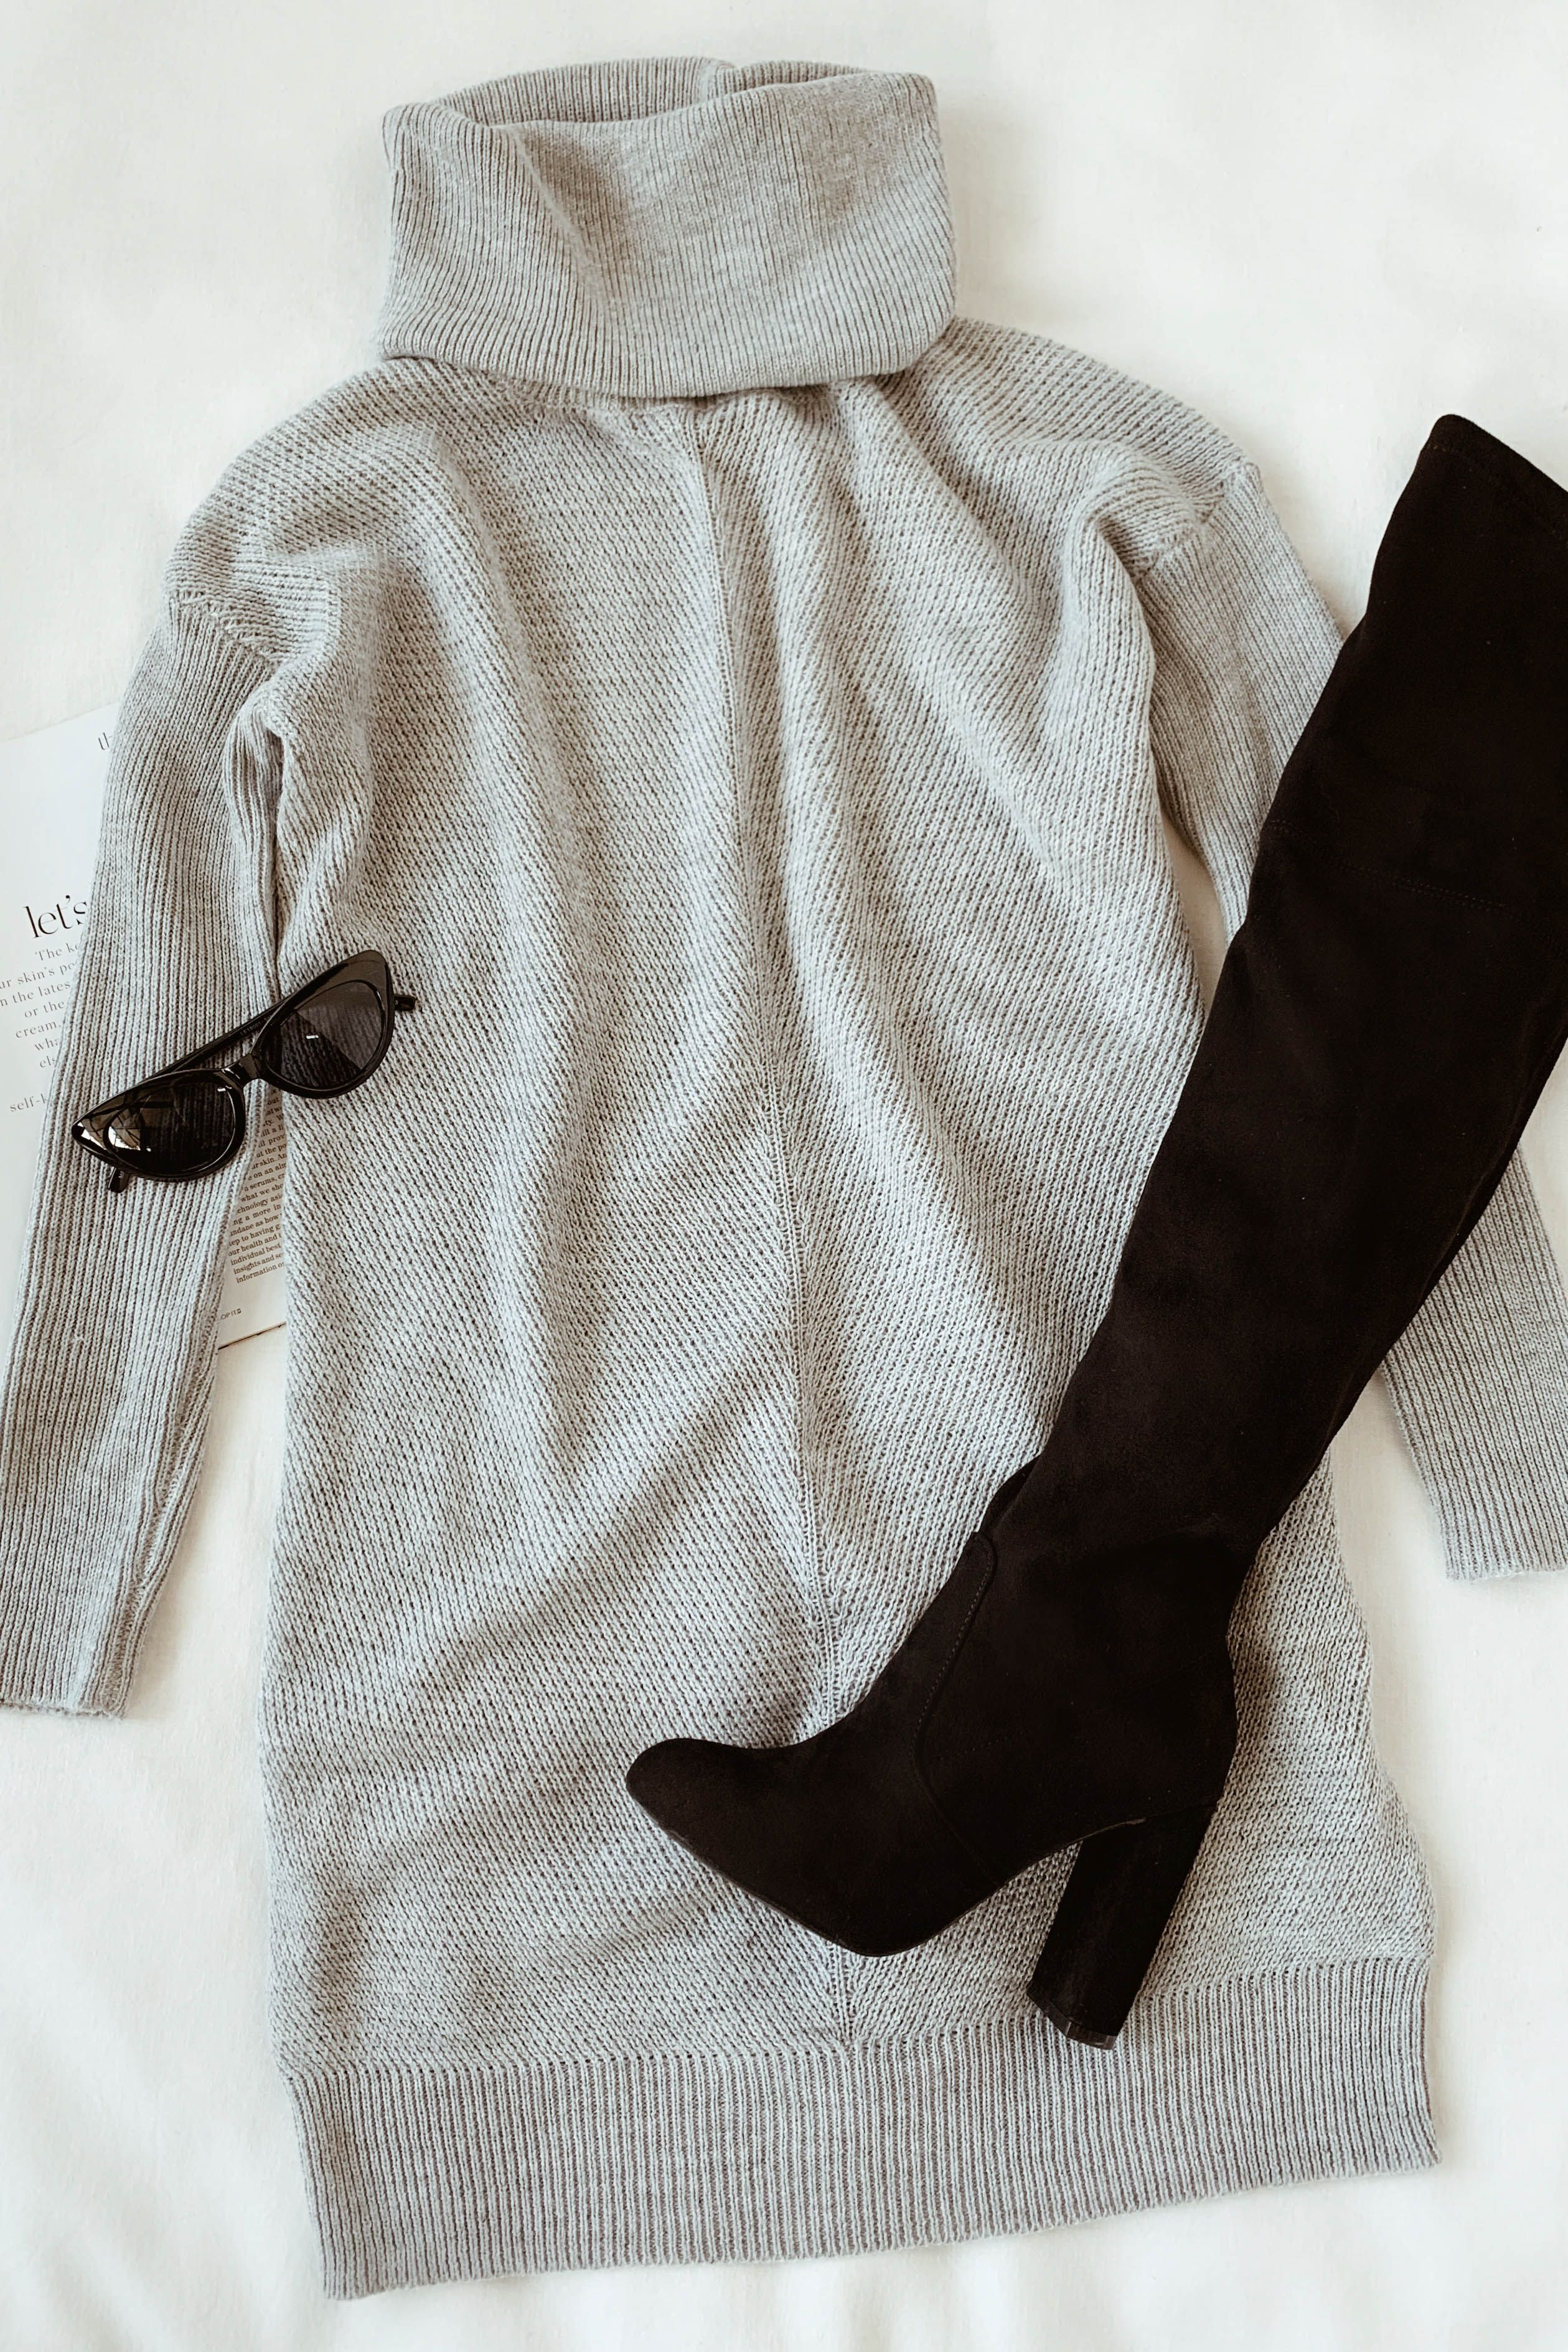 Tea Reader Light Grey Sweater Dress #sweaterdressoutfit